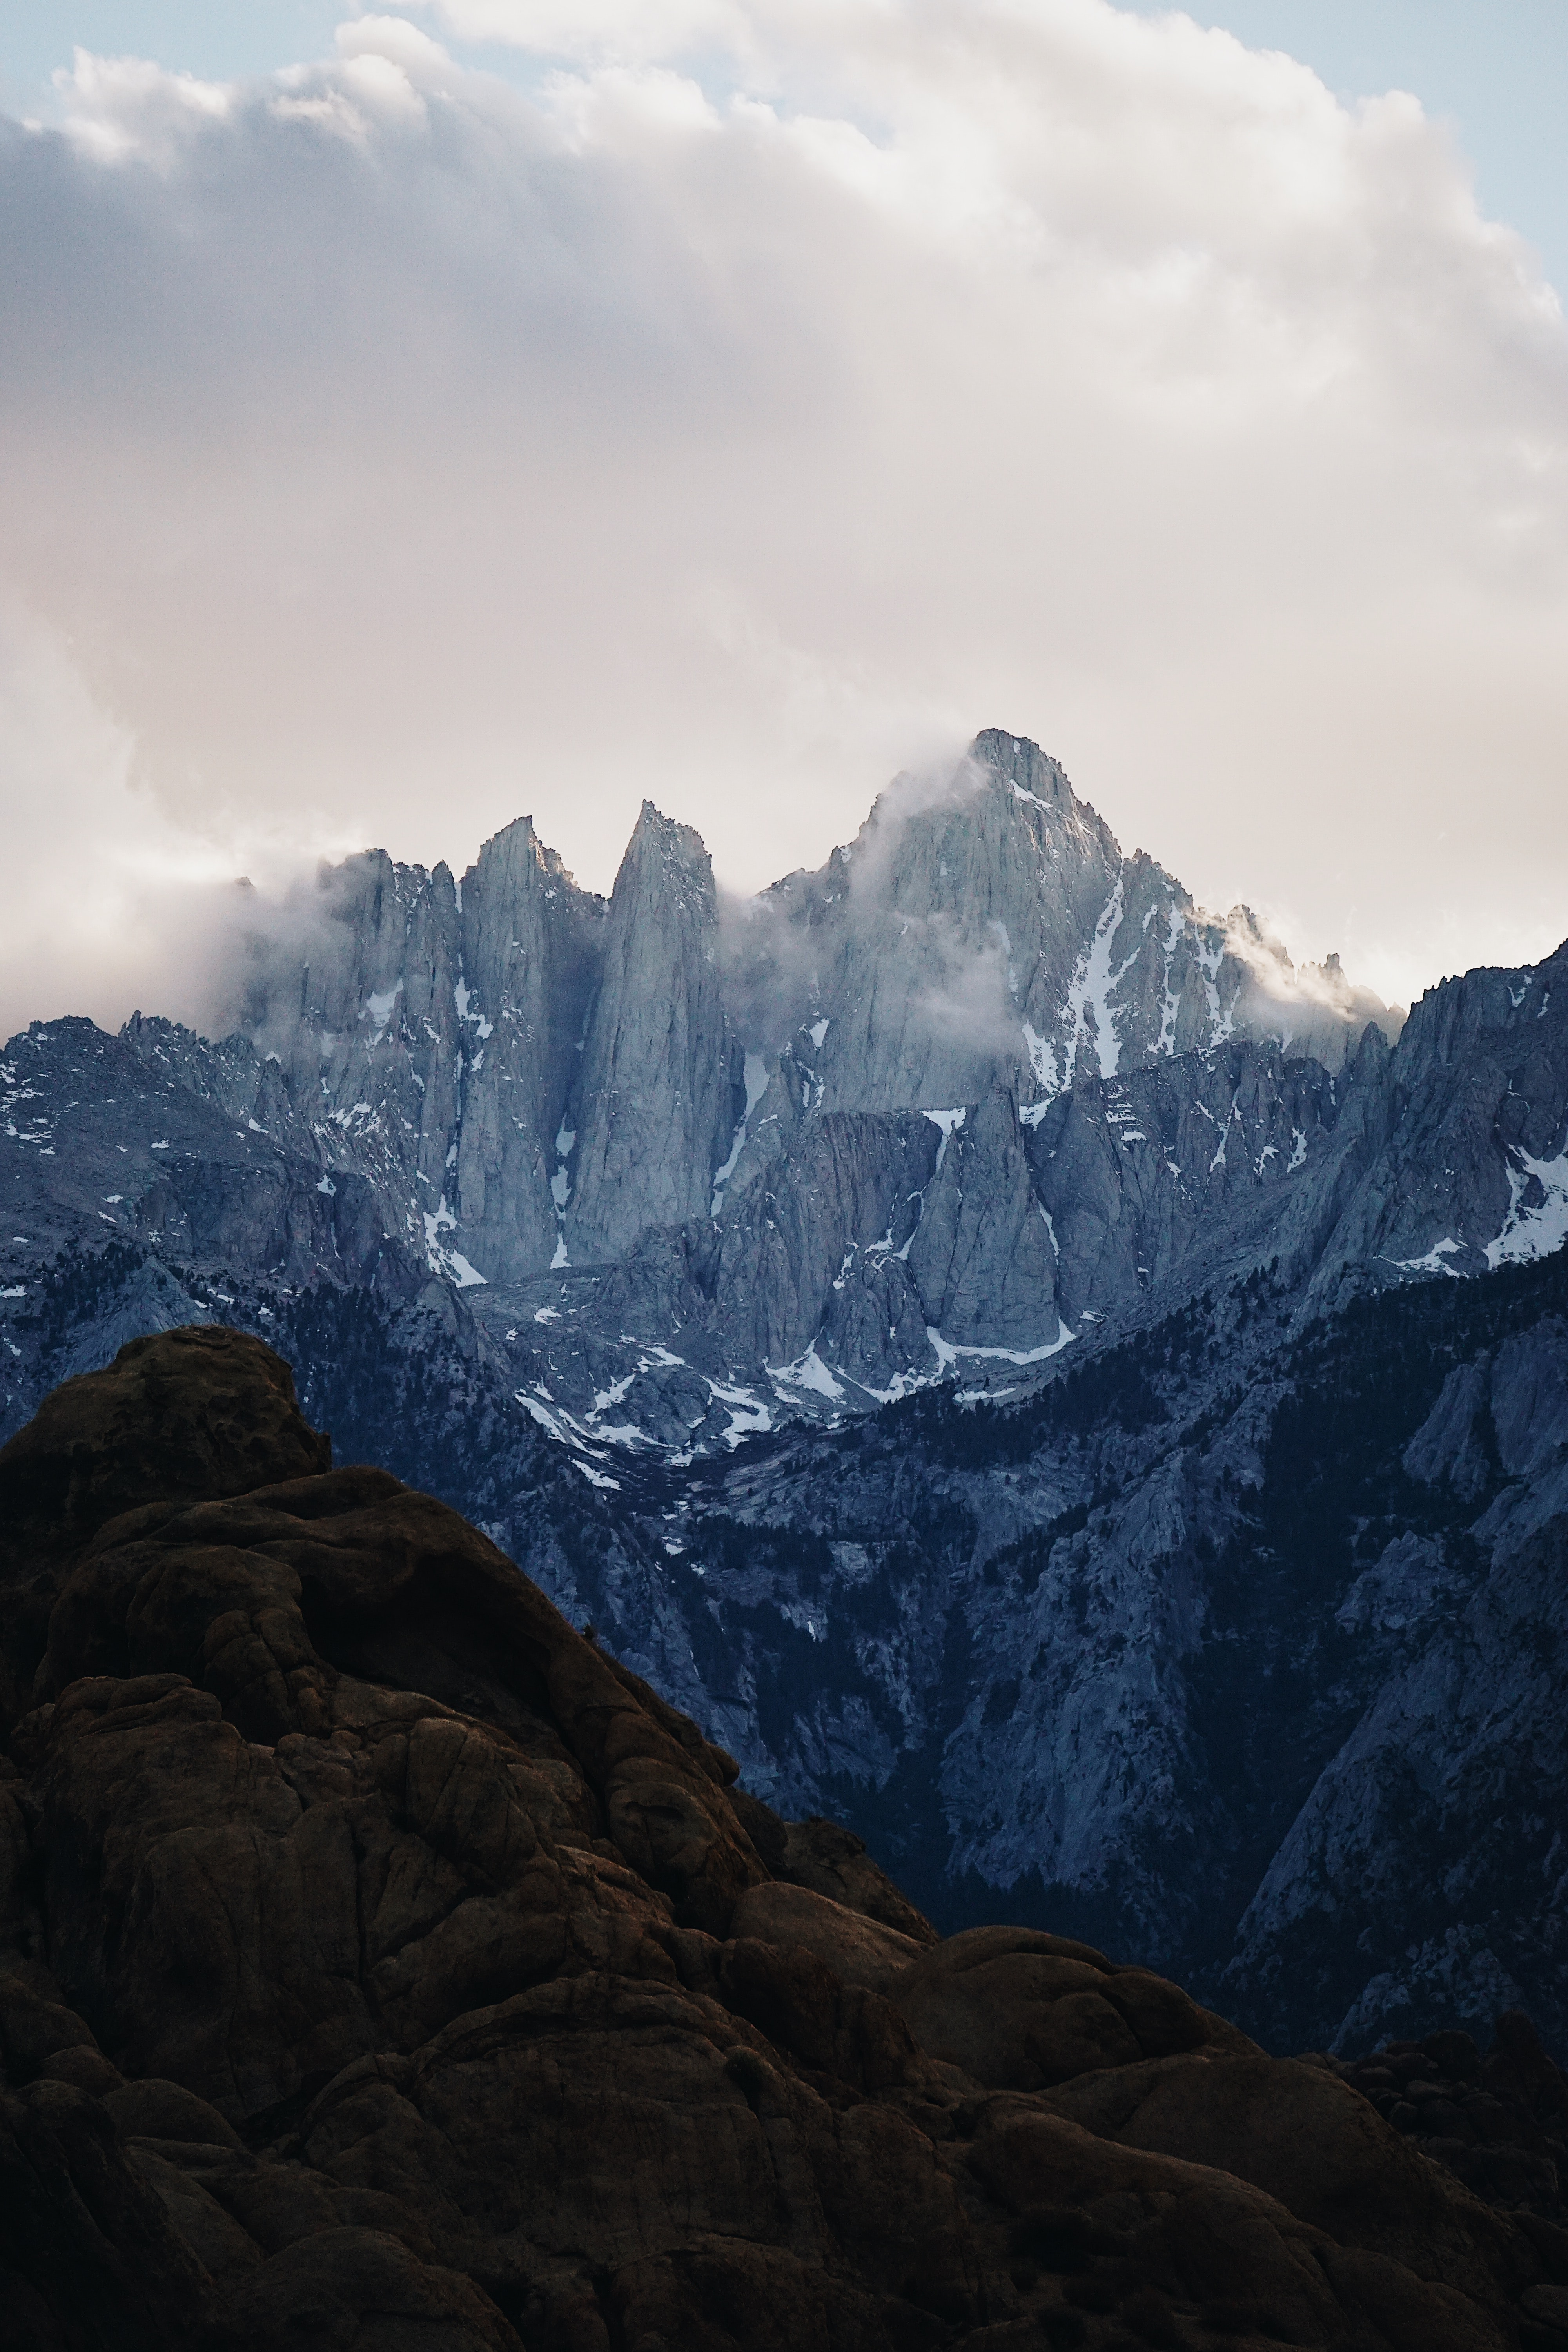 photo of gray mountains under cloudy sky